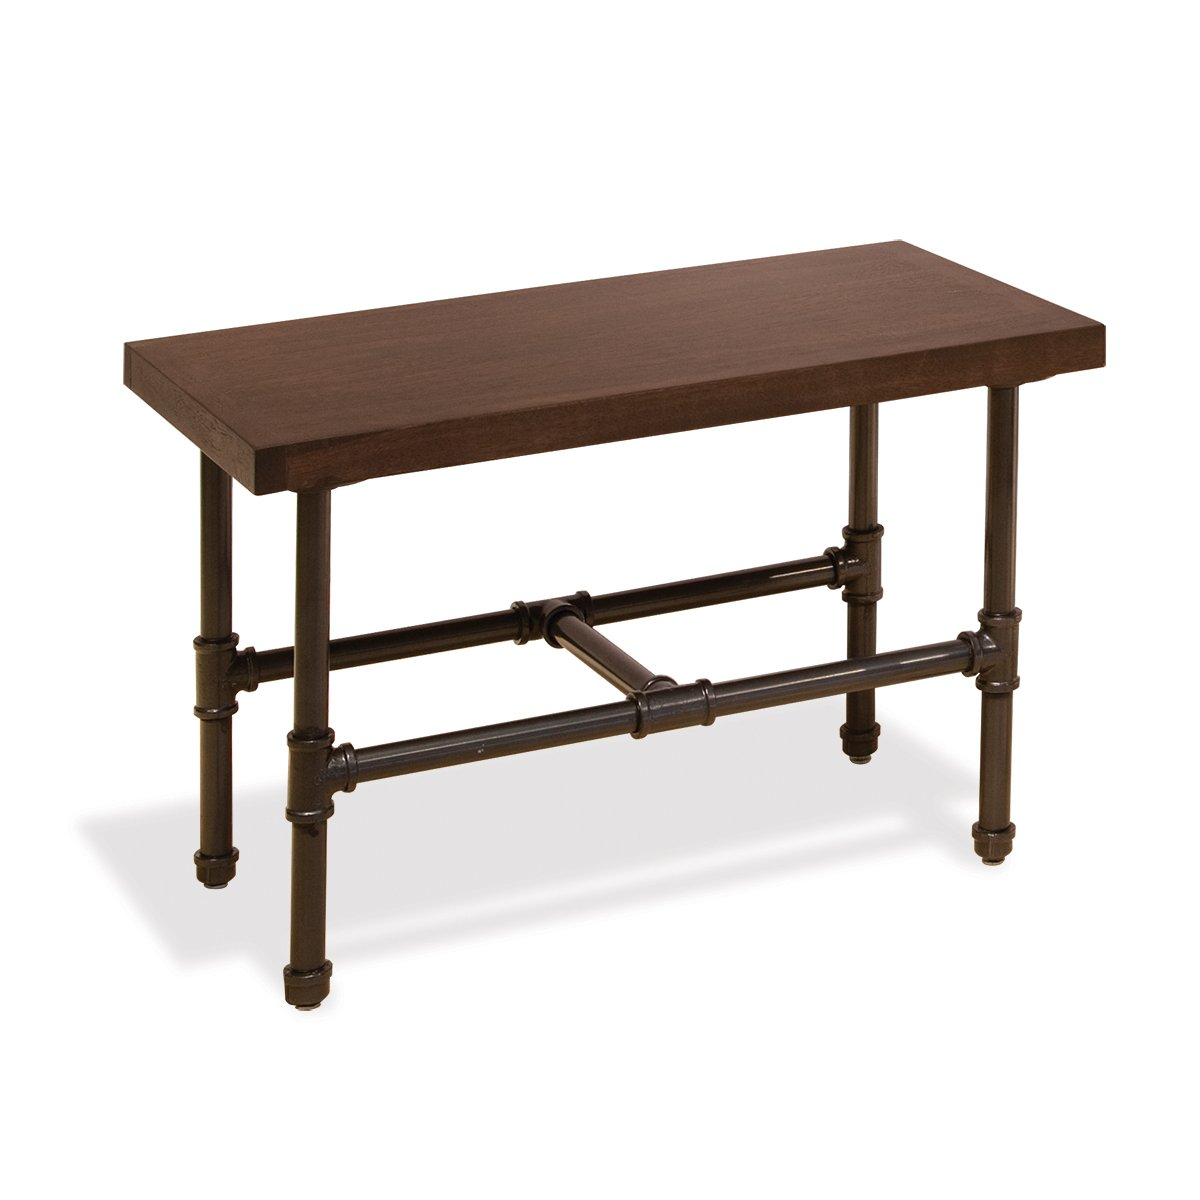 Econoco Pipeline Small Display Table with Top, Dark Brown Wood Grained Melamine by Econoco (Image #1)